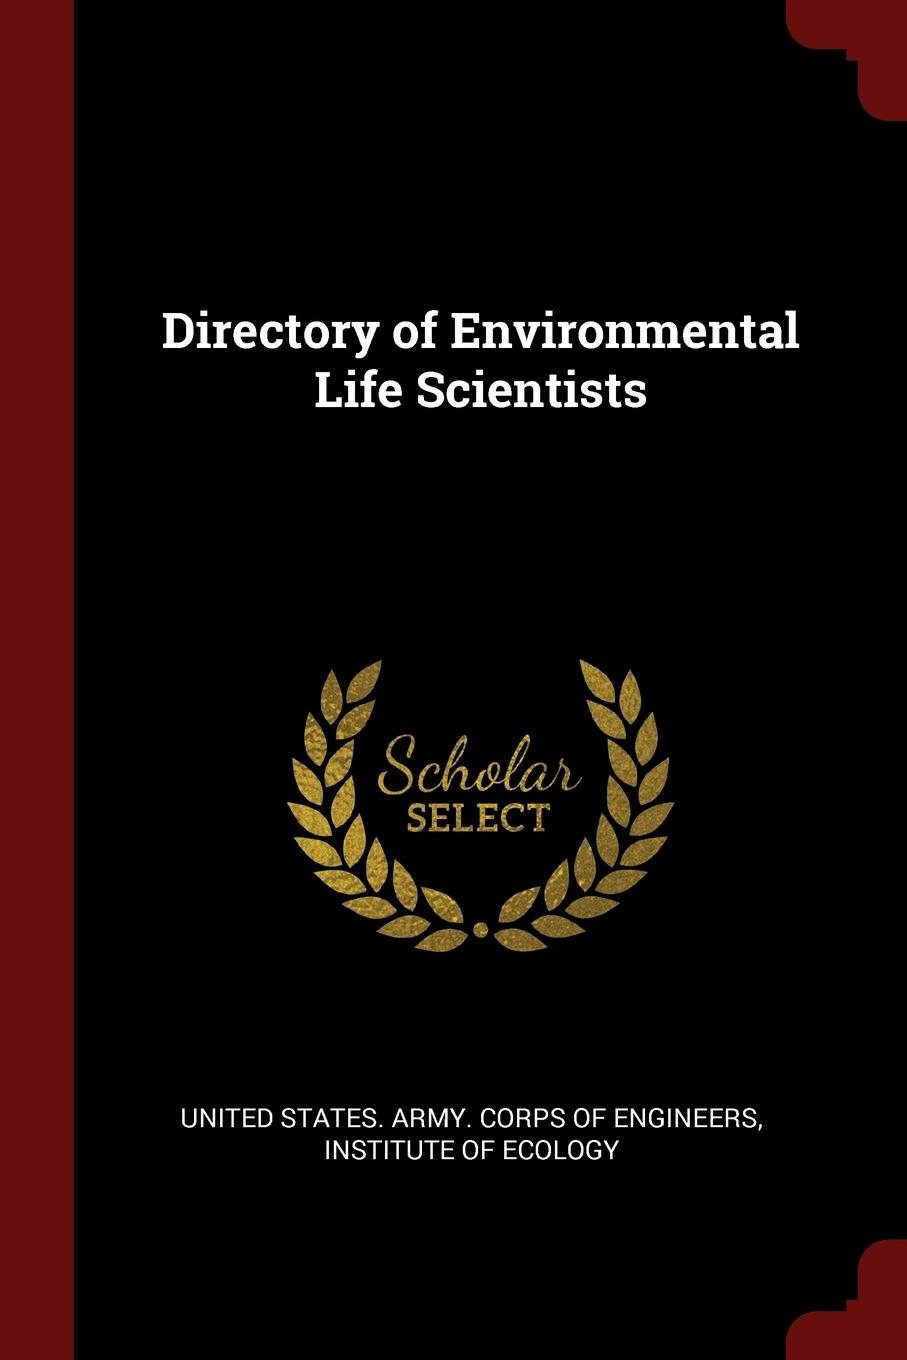 Directory of Environmental Life Scientists